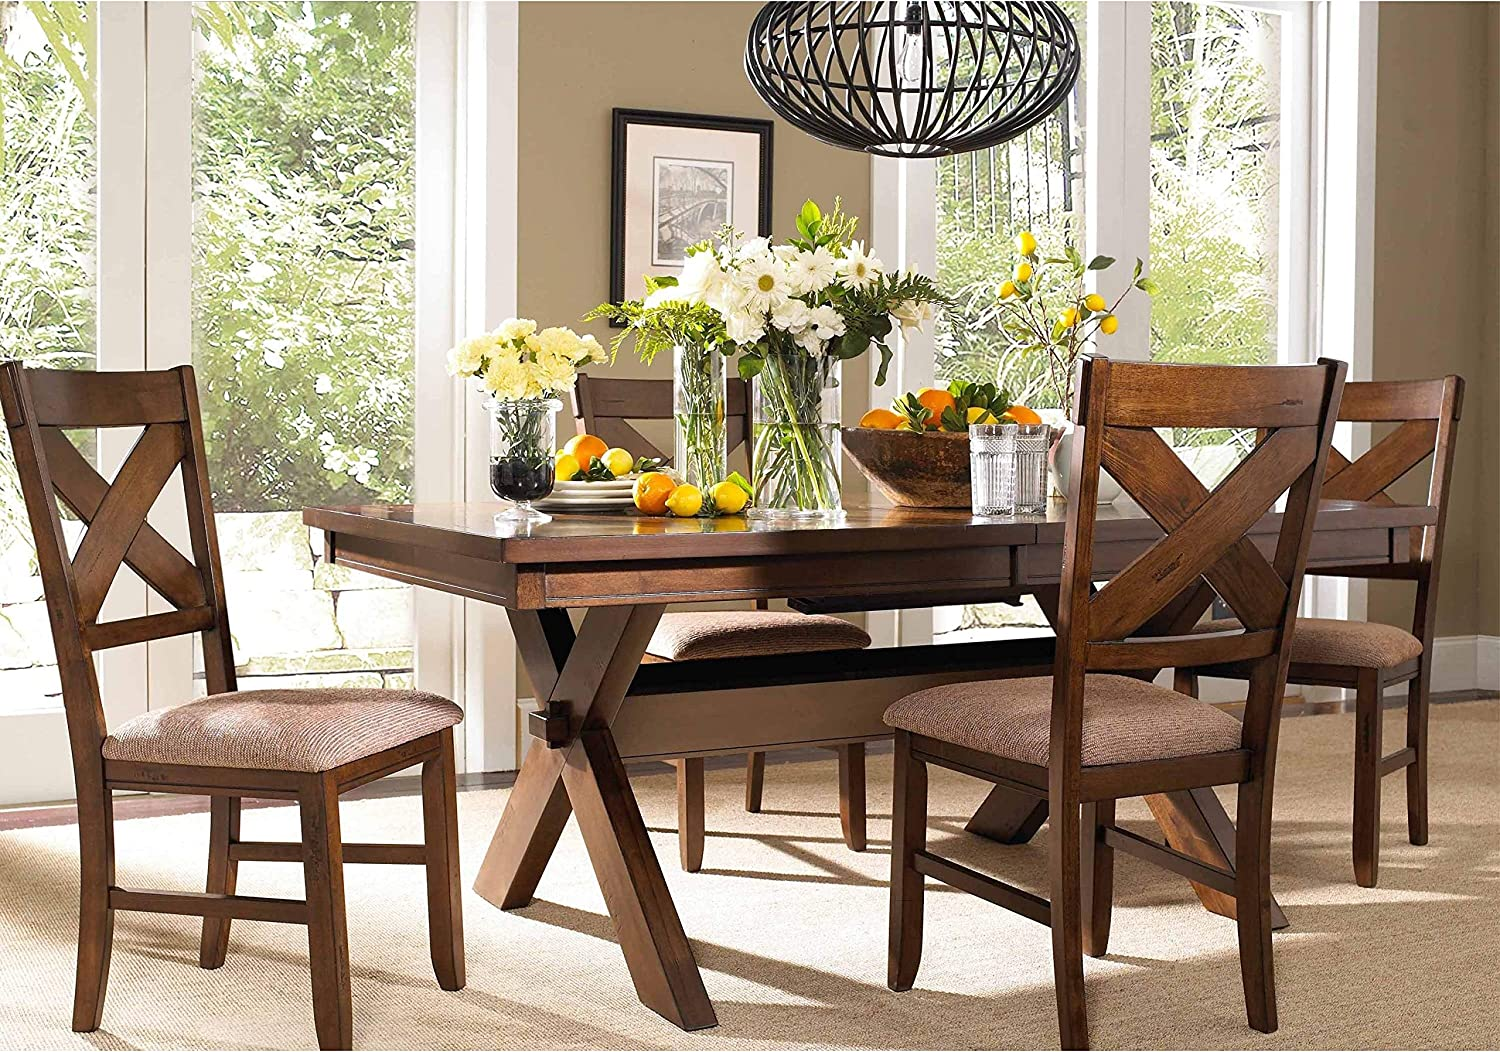 Wd Kraven Dining Set Brown Farmhouse Rustic Rectangle Acacia Rubberwood Honey Finish Butterfly Leaf